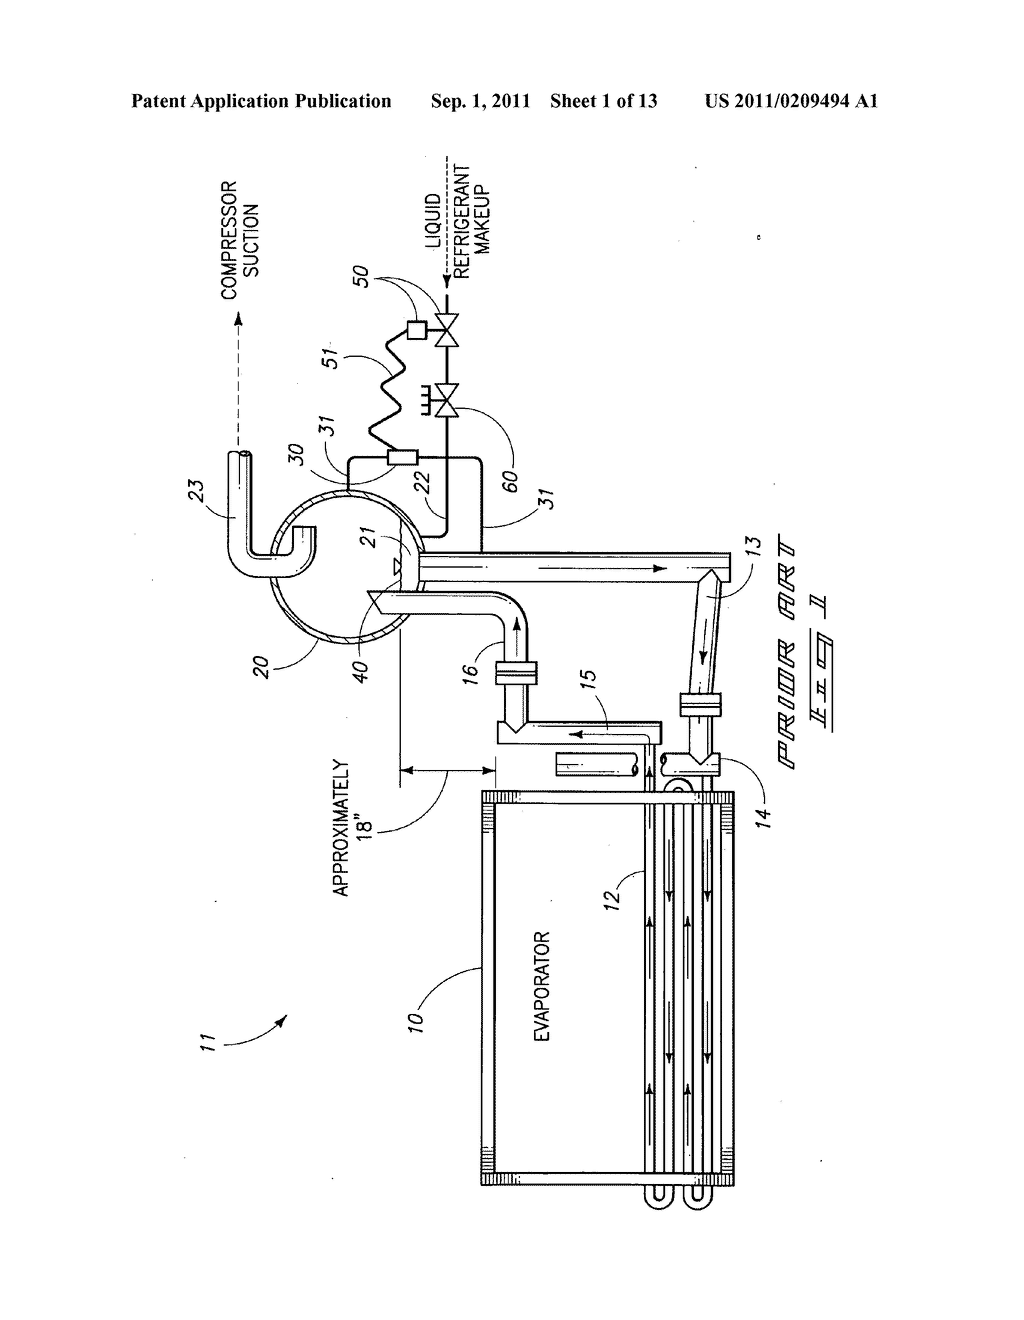 Direct Expansion Ammonia Refrigeration System And A Method Of Schematic Diagram Image 02